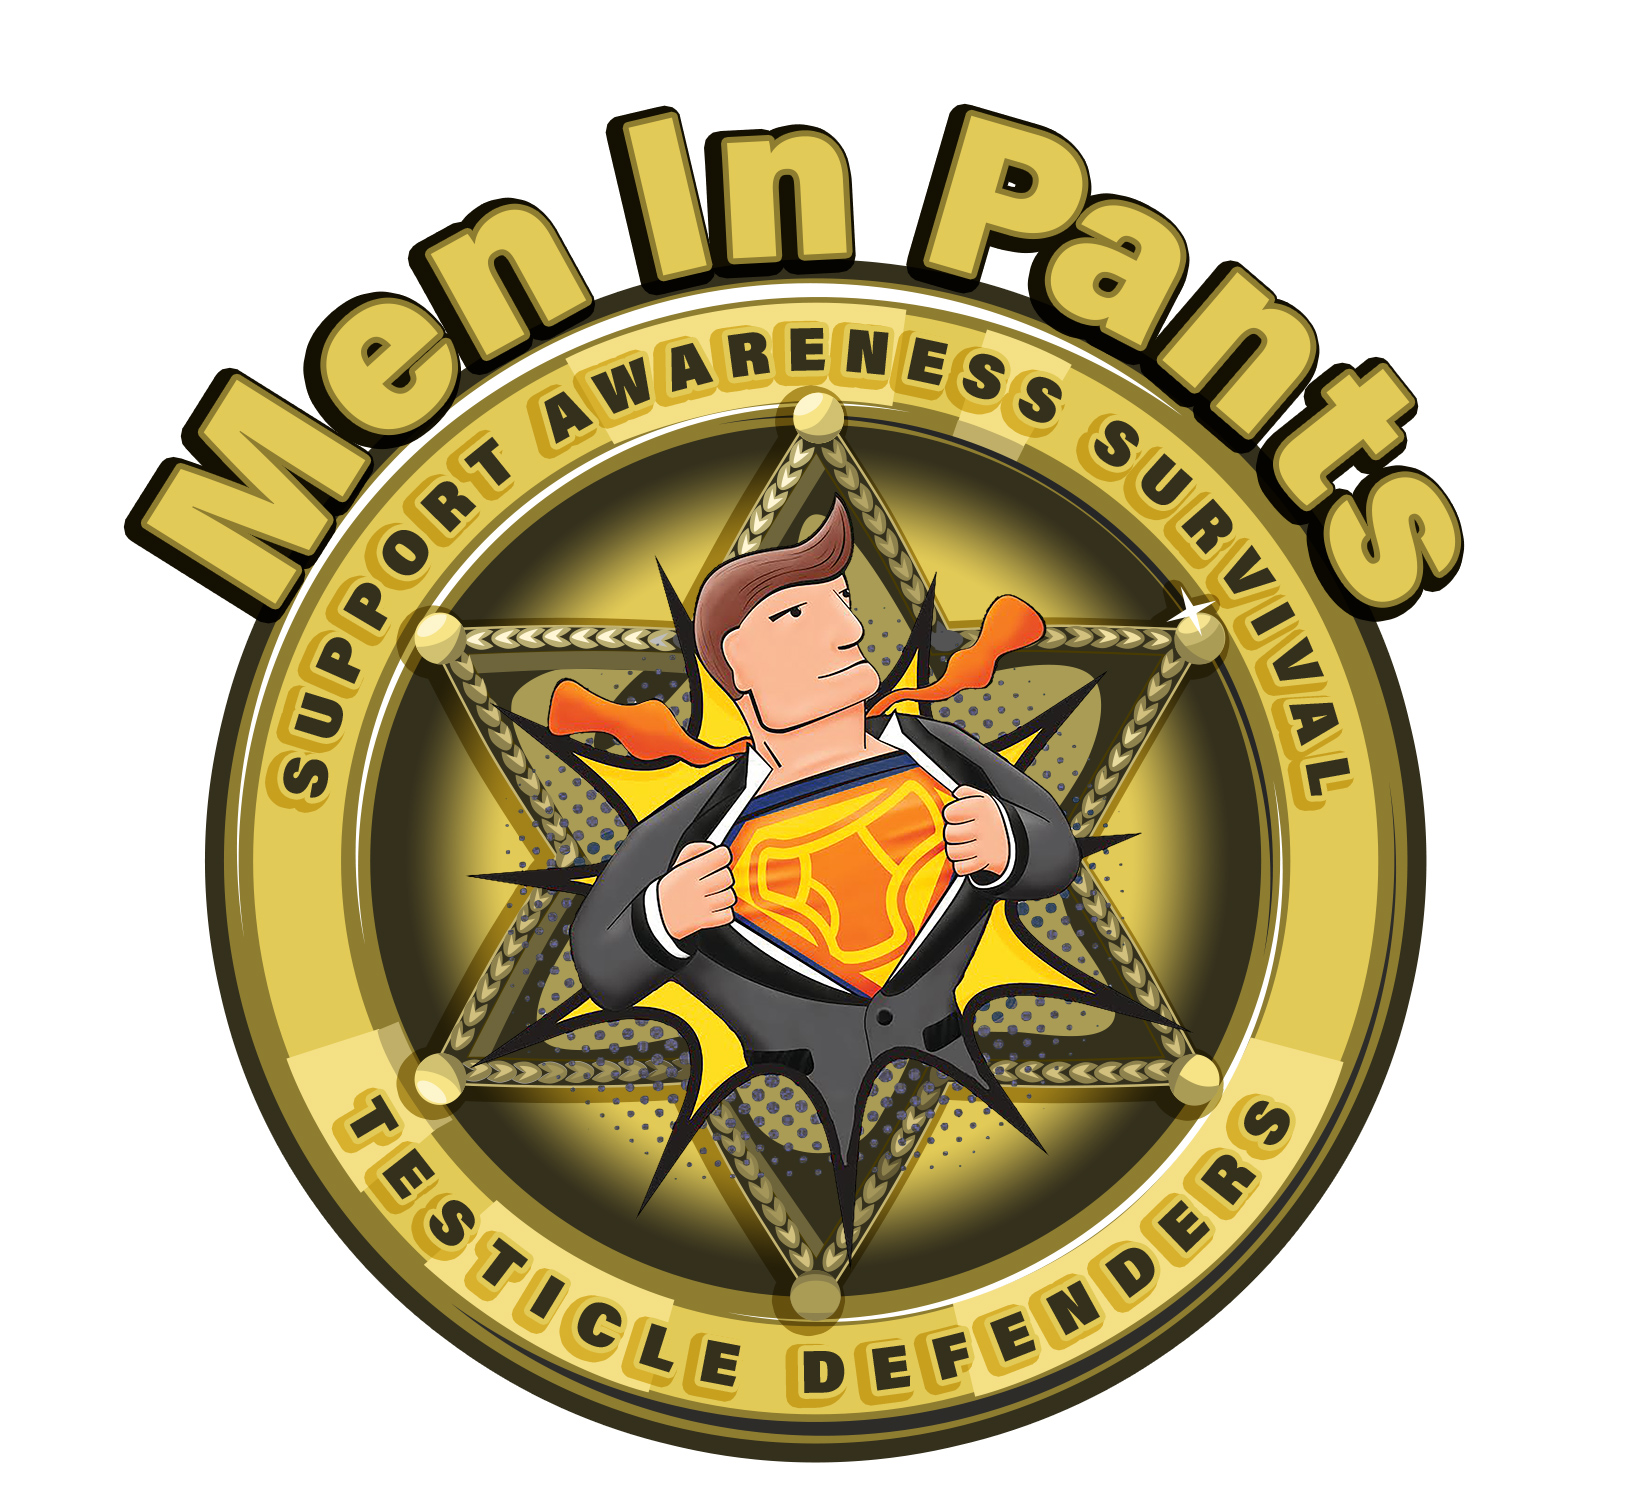 Men In Pants and how to become a Testicle Defender